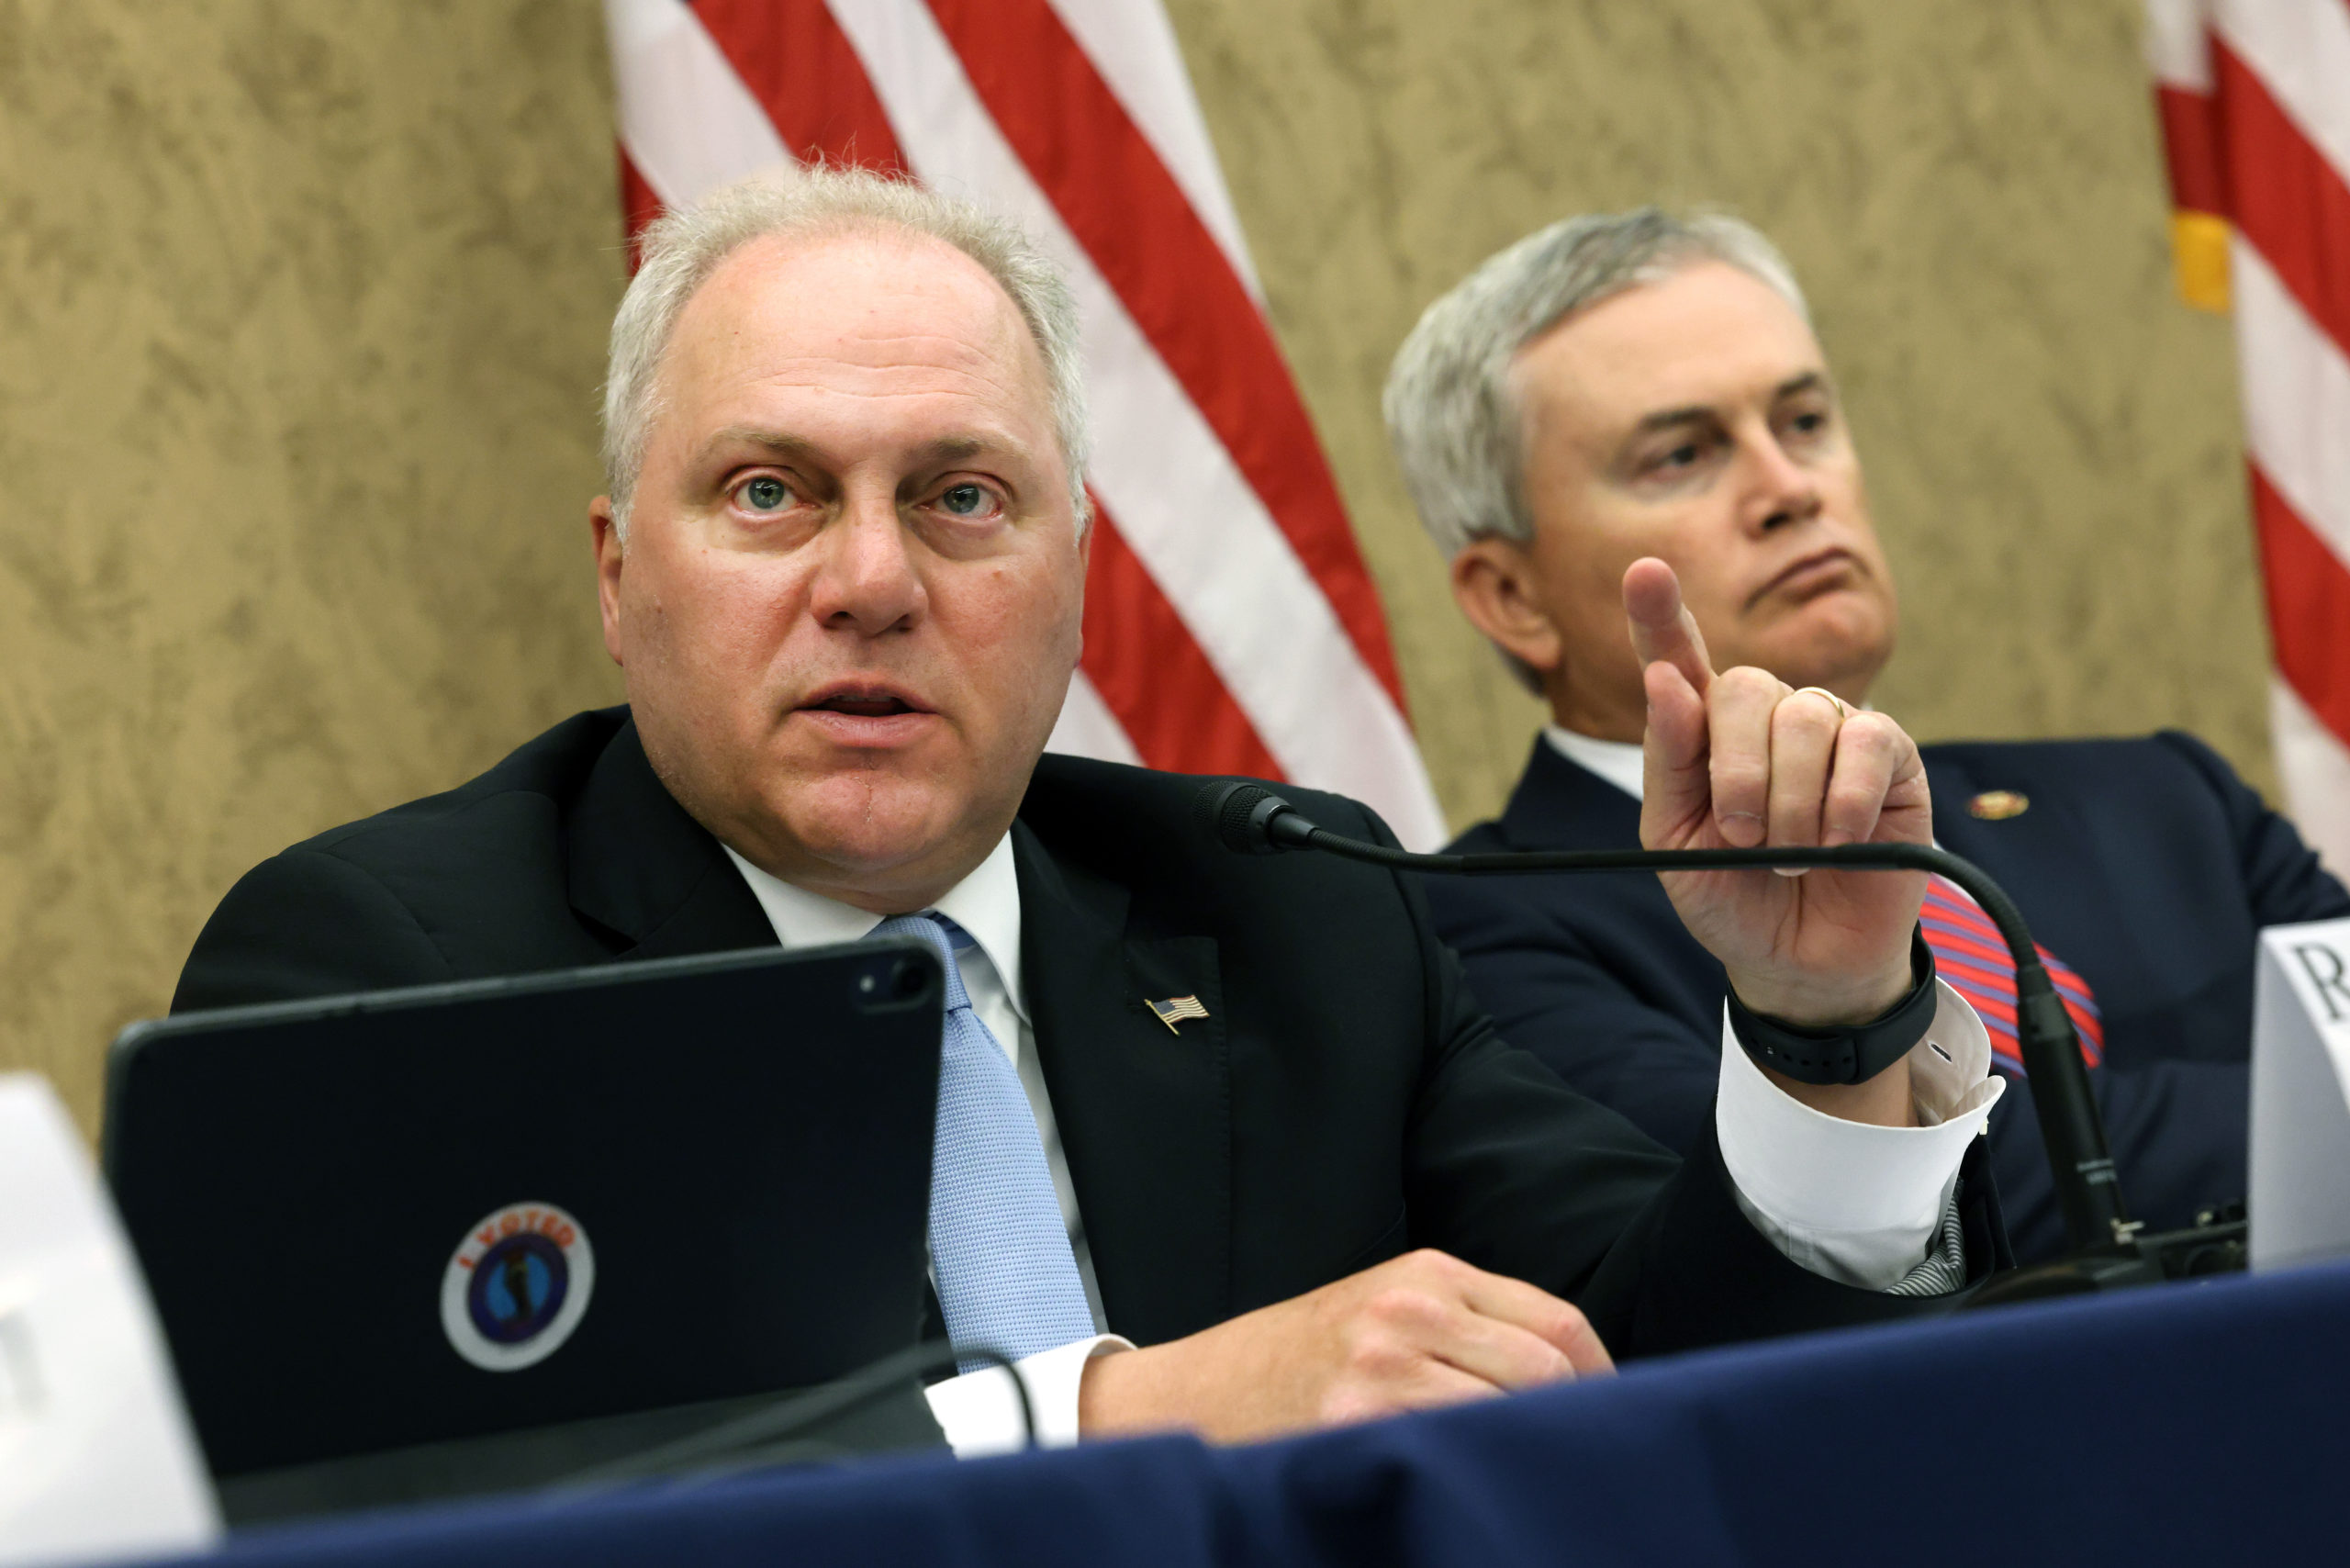 Rep. Steve Scalise speaks alongside Rep. James Comer during a hearing on June 29. (Kevin Dietsch/Getty Images)